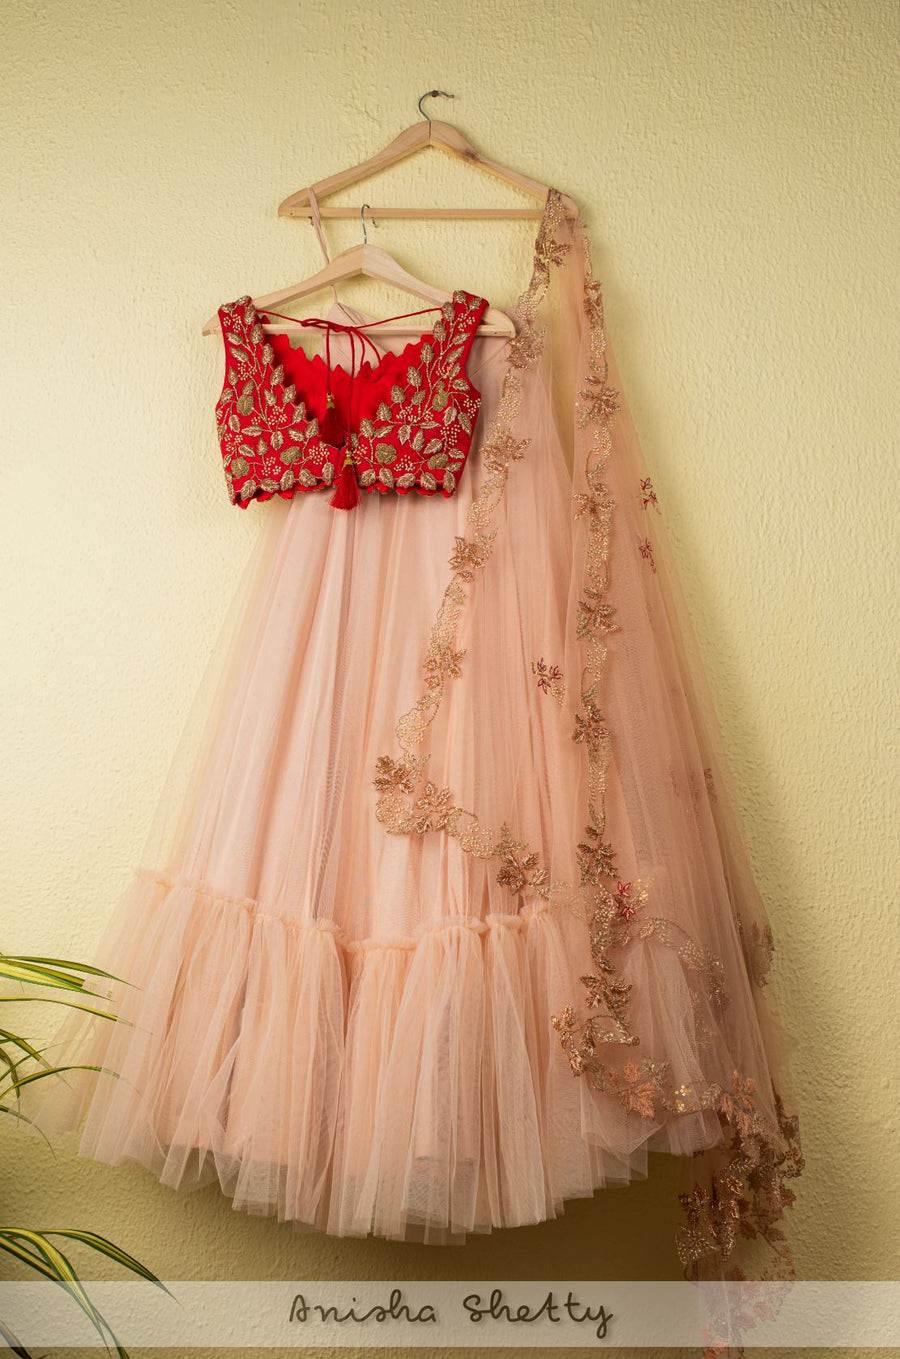 SALMON PINK TIRERED LEHENGA WITH RED CUTWORK ZARDOSI BLOUSE AND ZARDOSI DUPATTA